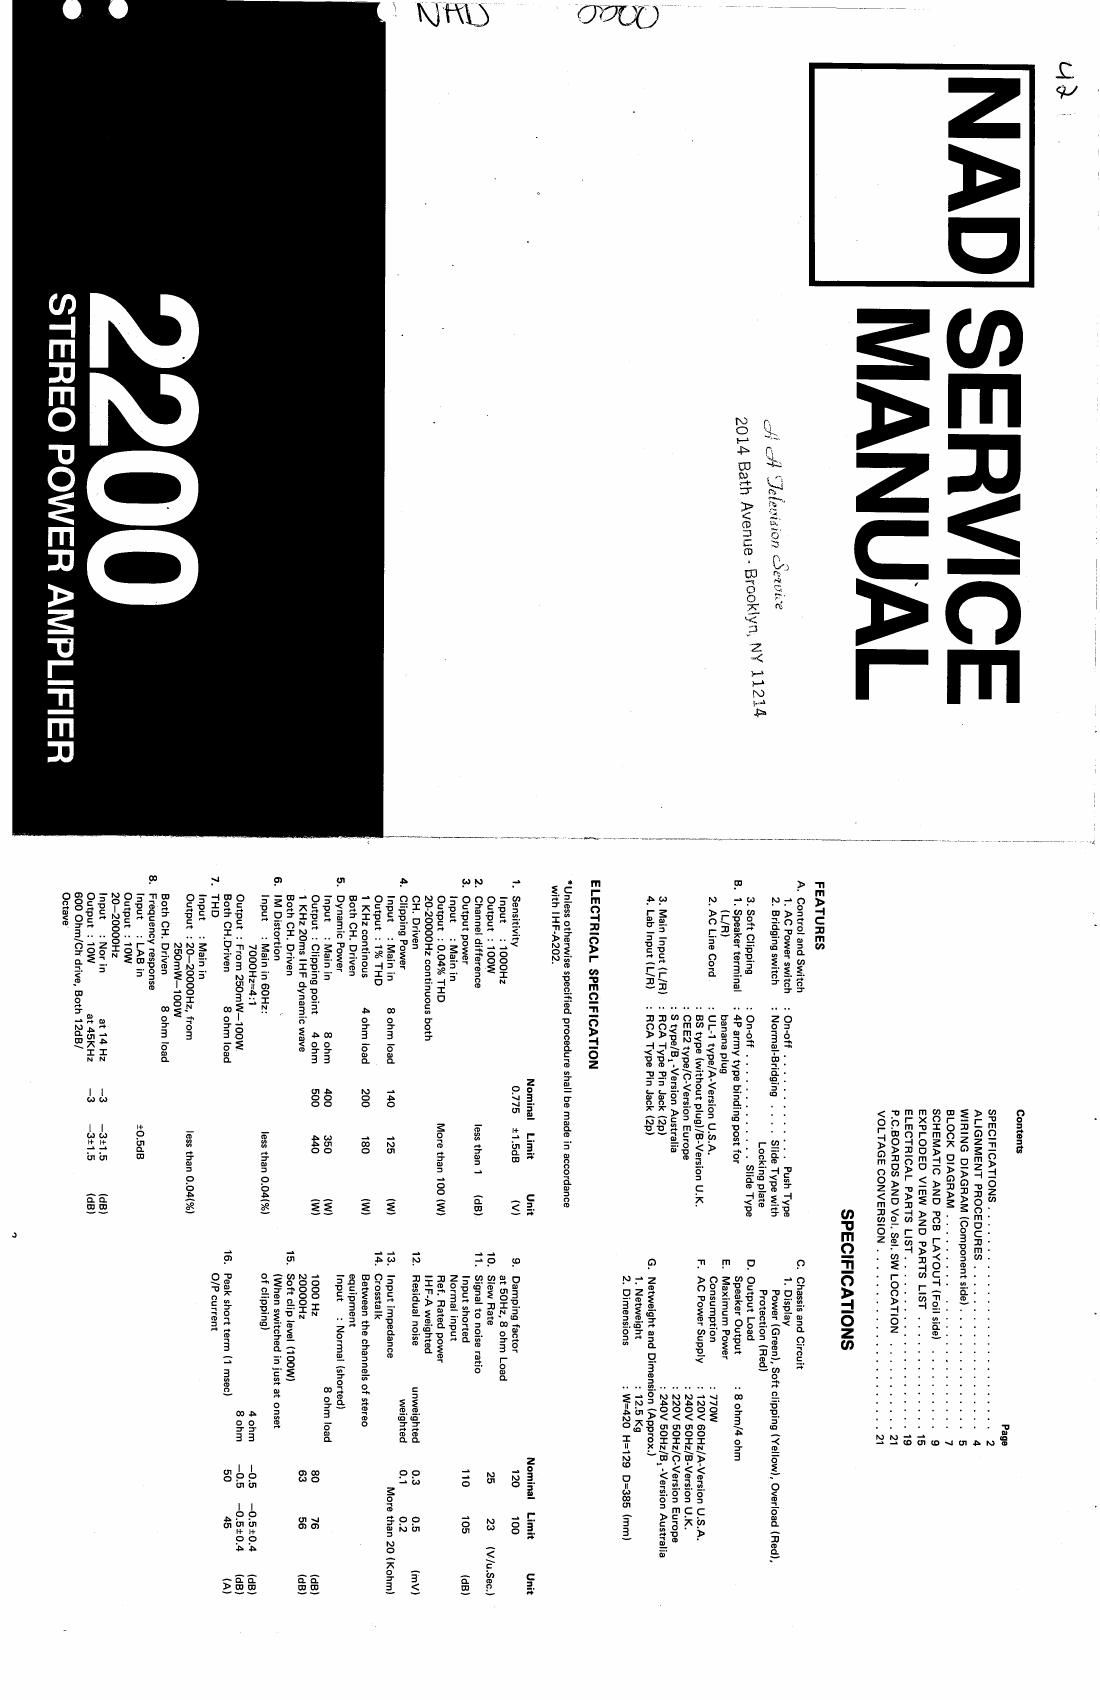 nad 2200 service manual rh audioservicemanuals com nad 2200 pe service manual Nad 2100 Stereo Power Amplifier